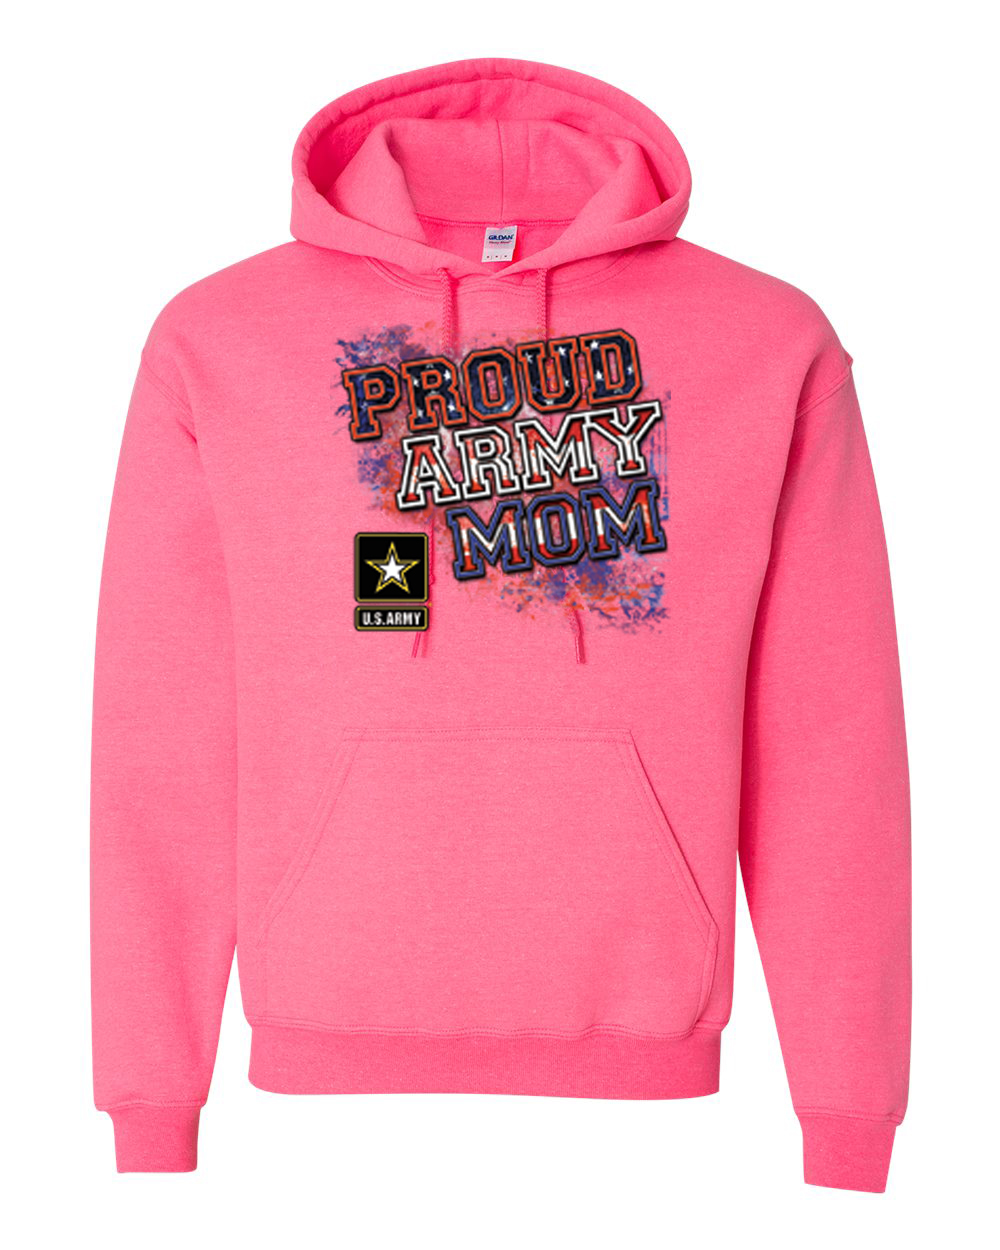 Find U.S. Army Women's Hoodies & Sweatshirts in a variety of colors and styles from slim fit hoodies with a kangaroo pocket & double lined hood to zippered hoodies. Official Licensed Product of the U.S. Army. By federal law, licensing fees paid to the U.S. Army for use of its trademarks provide.